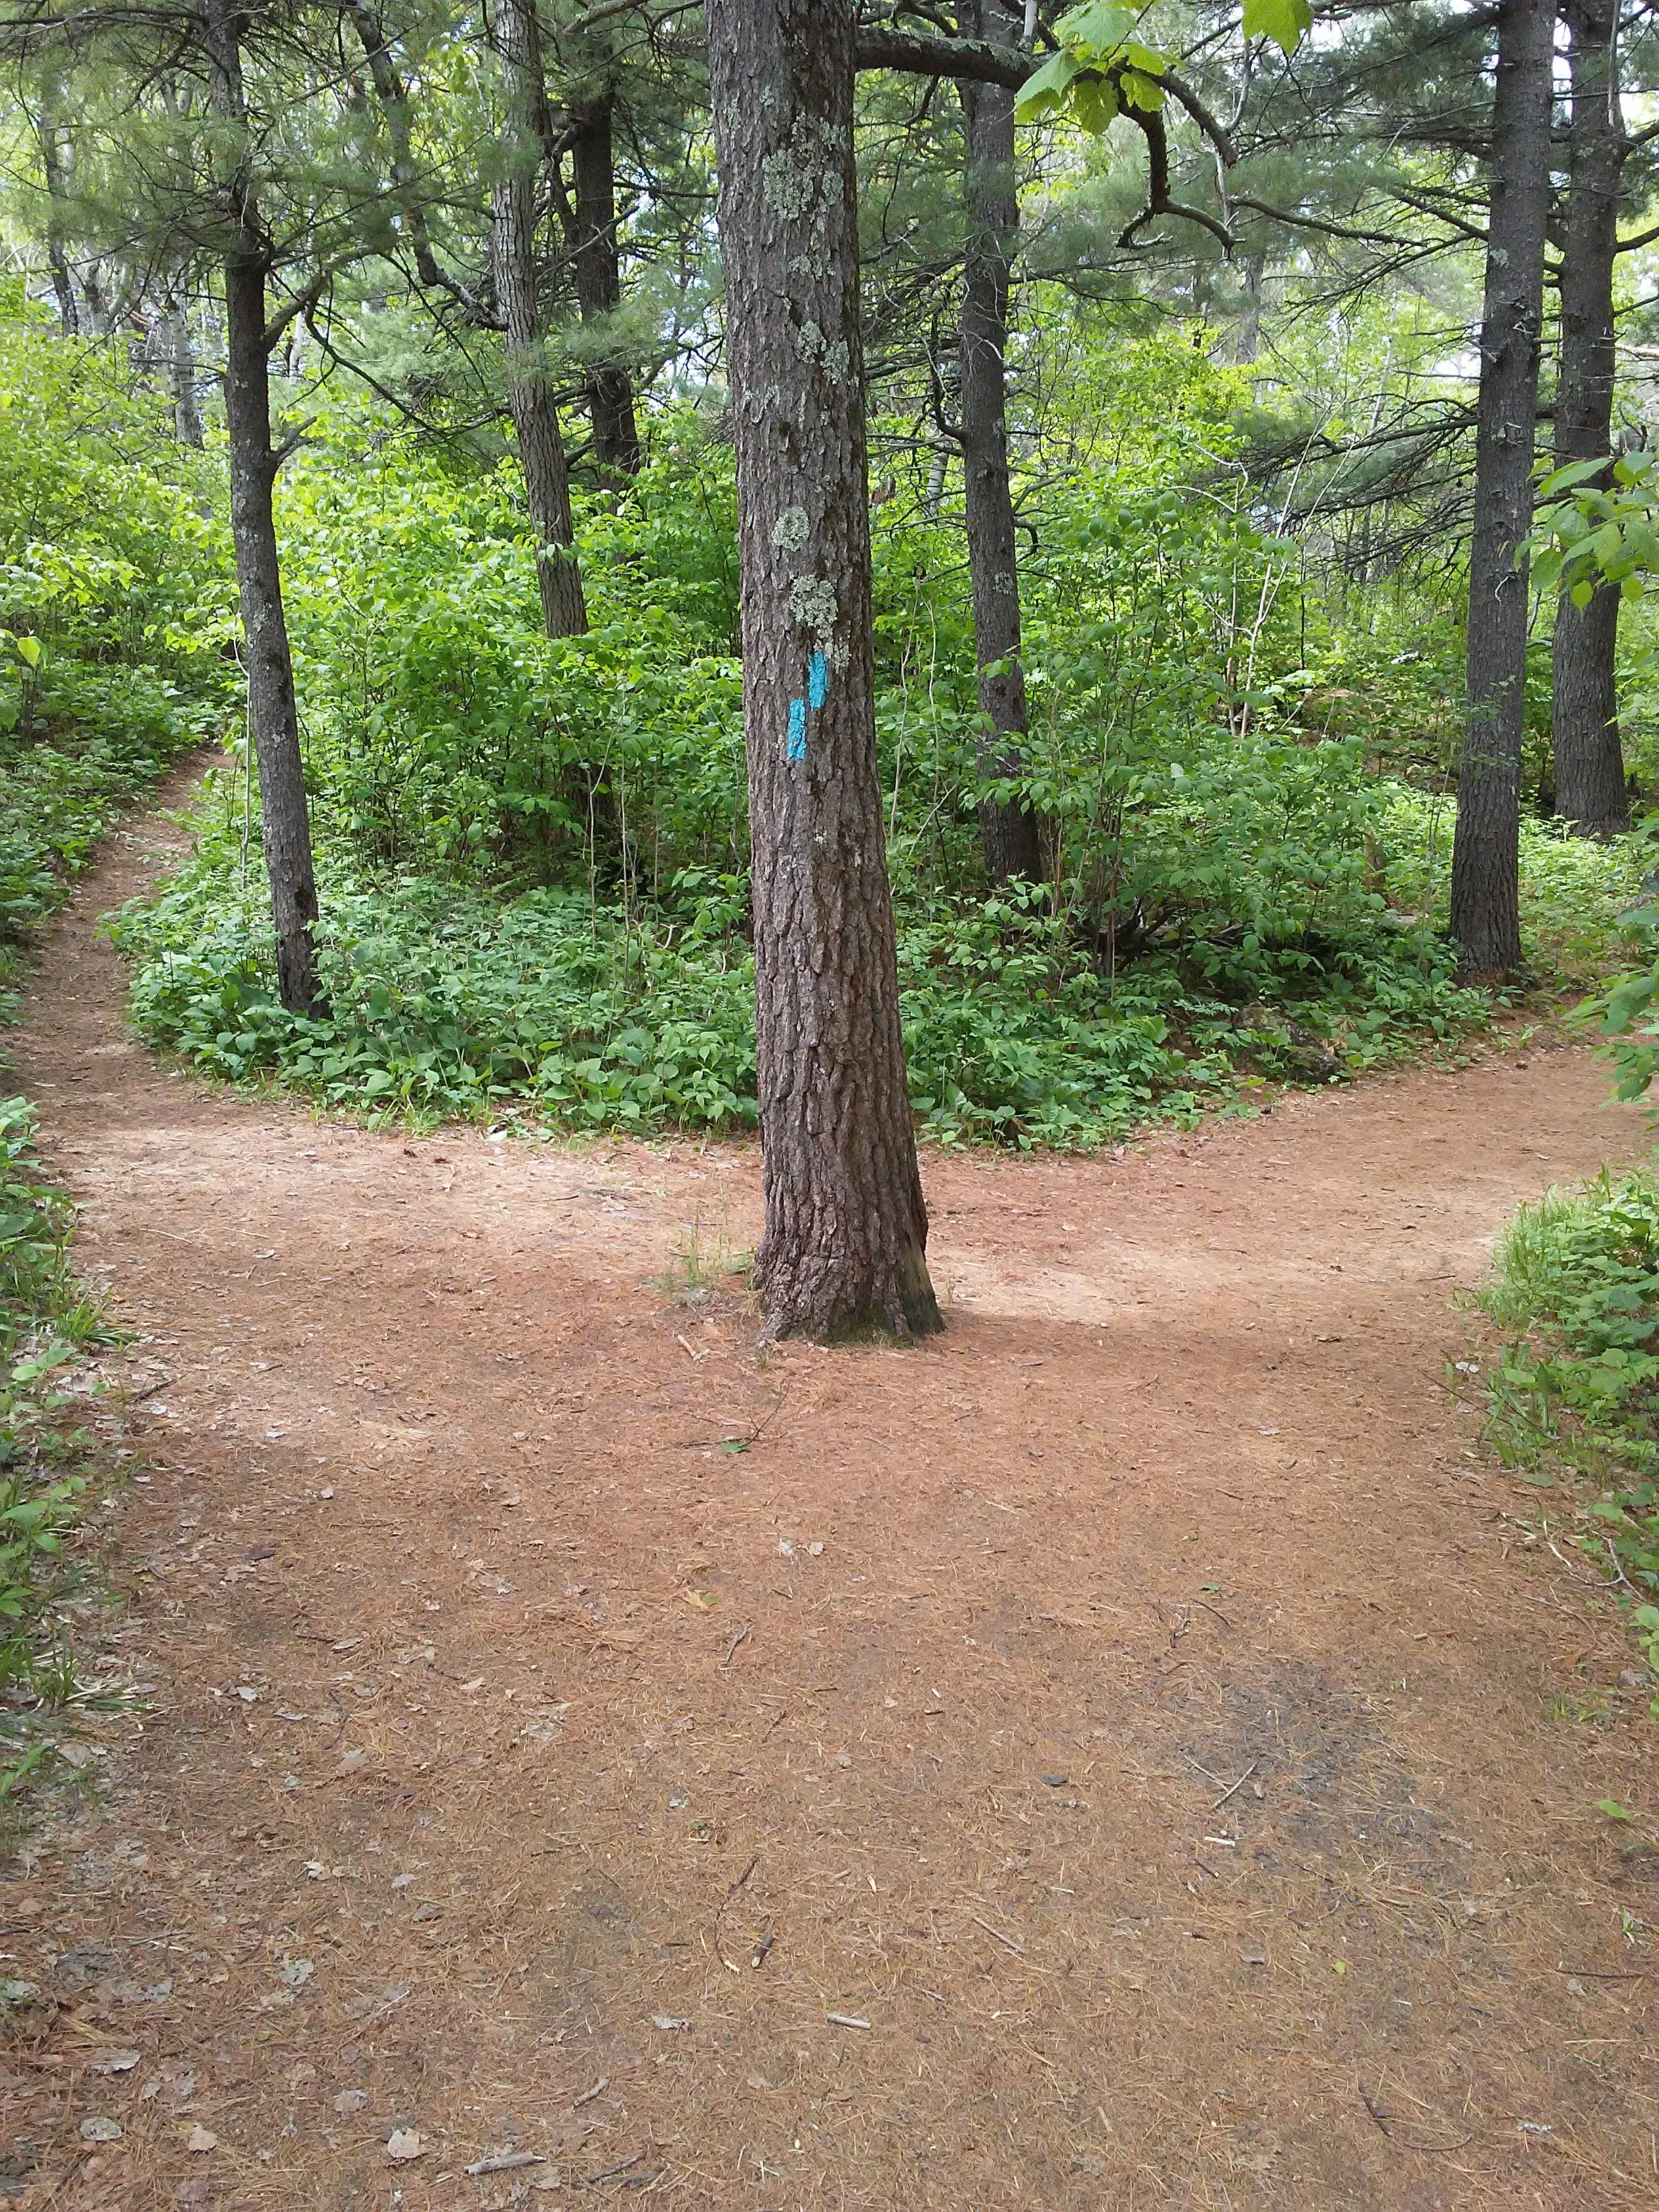 dirt path and a tree with two blue blazes at the fork in the path